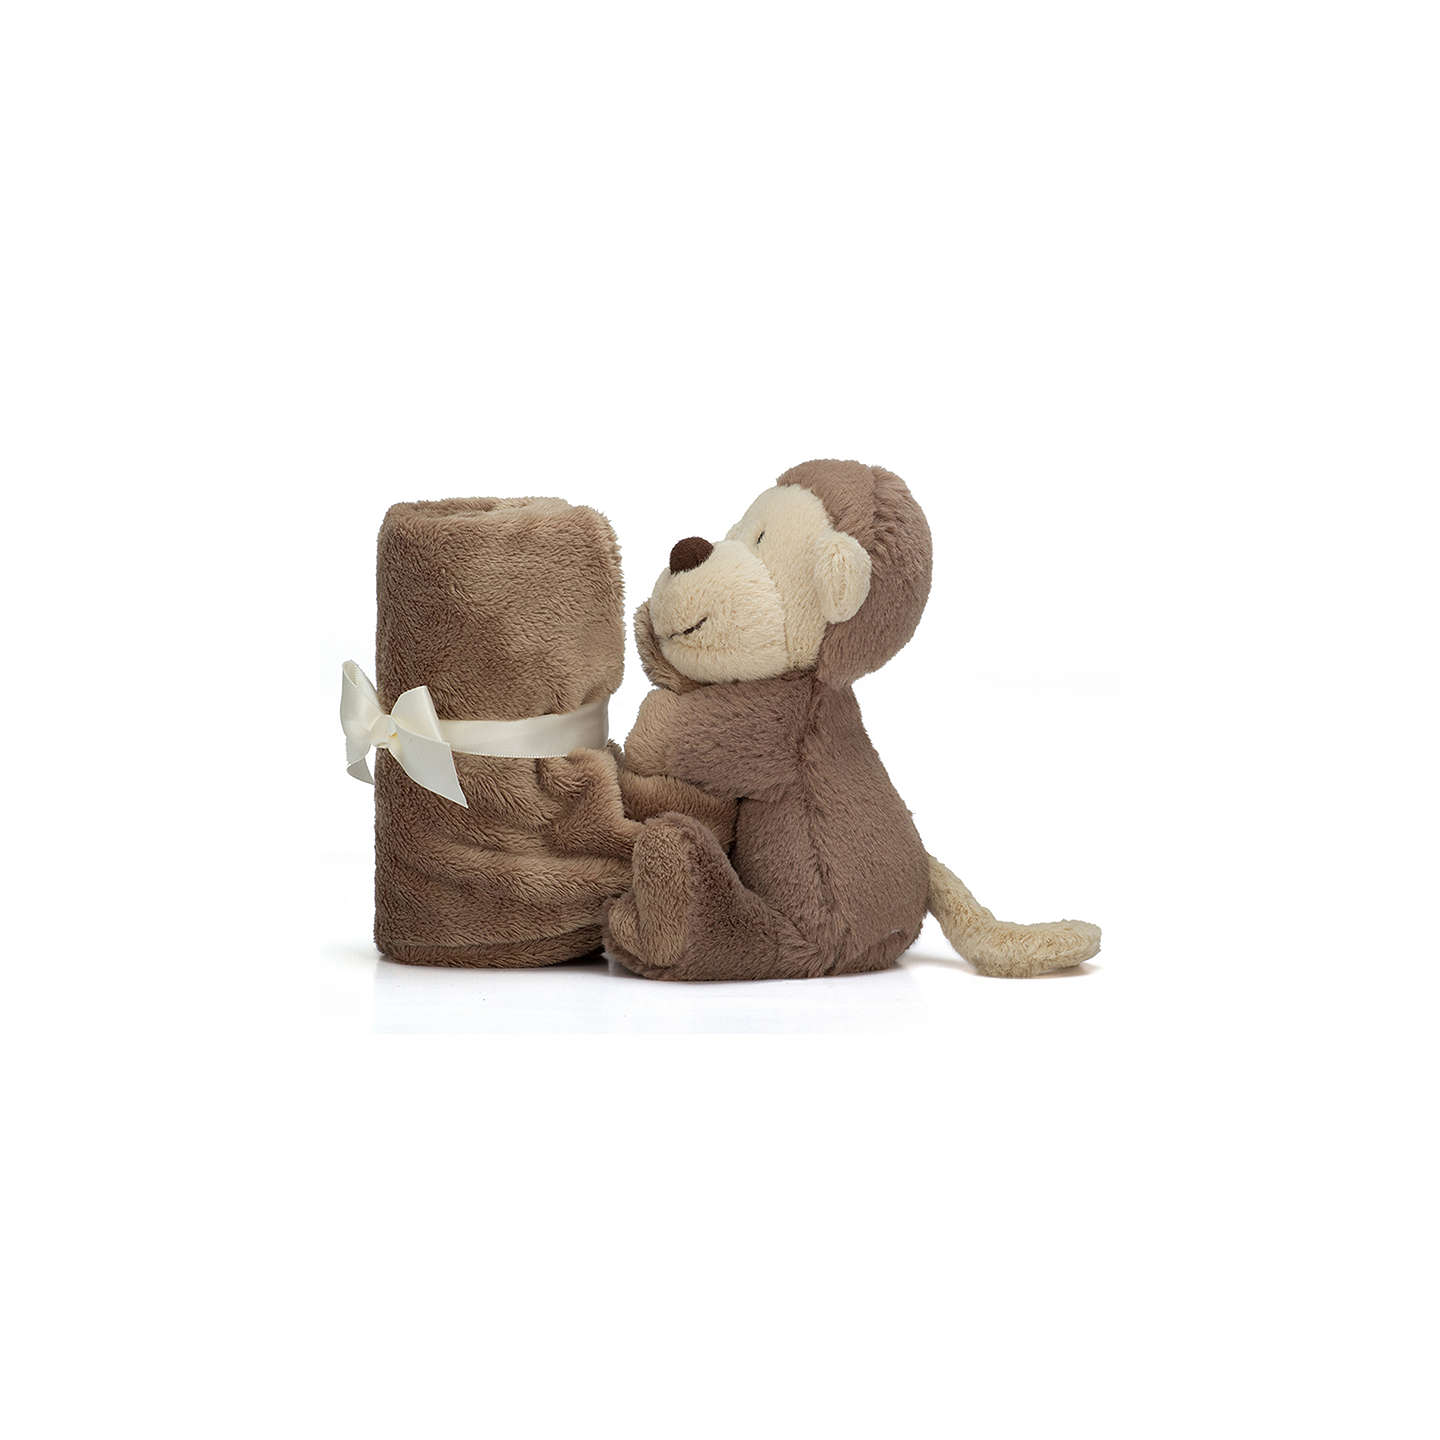 BuyJellycat Bashful Monkey Baby Soother Soft Toy, One Size, Brown Online at johnlewis.com